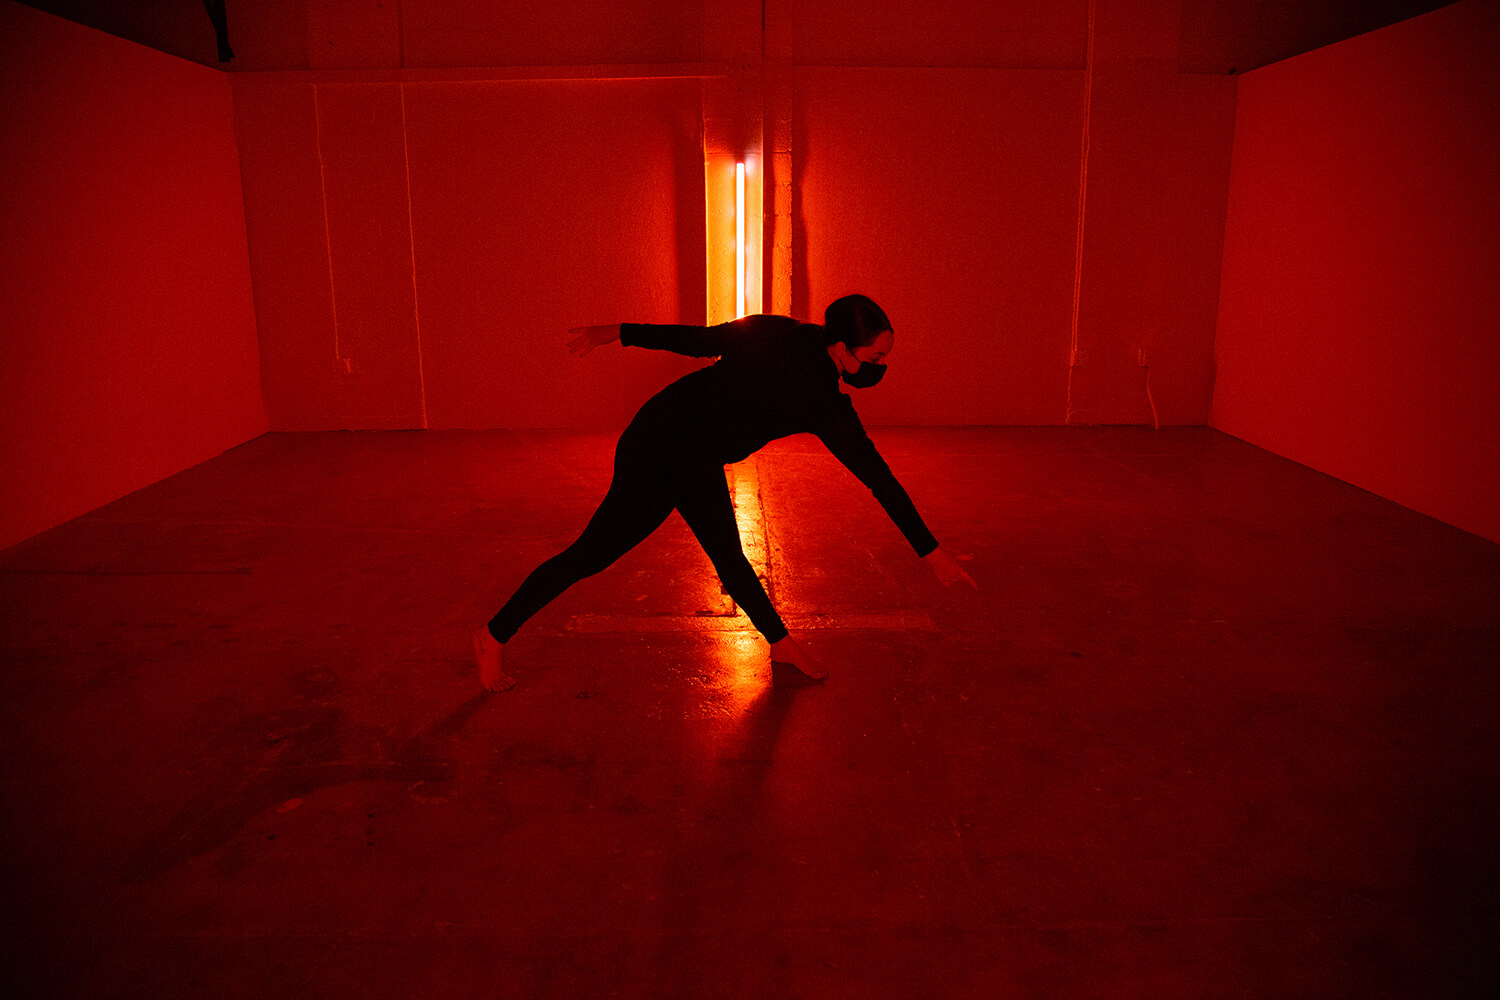 Person dressed in black with arms and legs outstretched in a red-lit room.